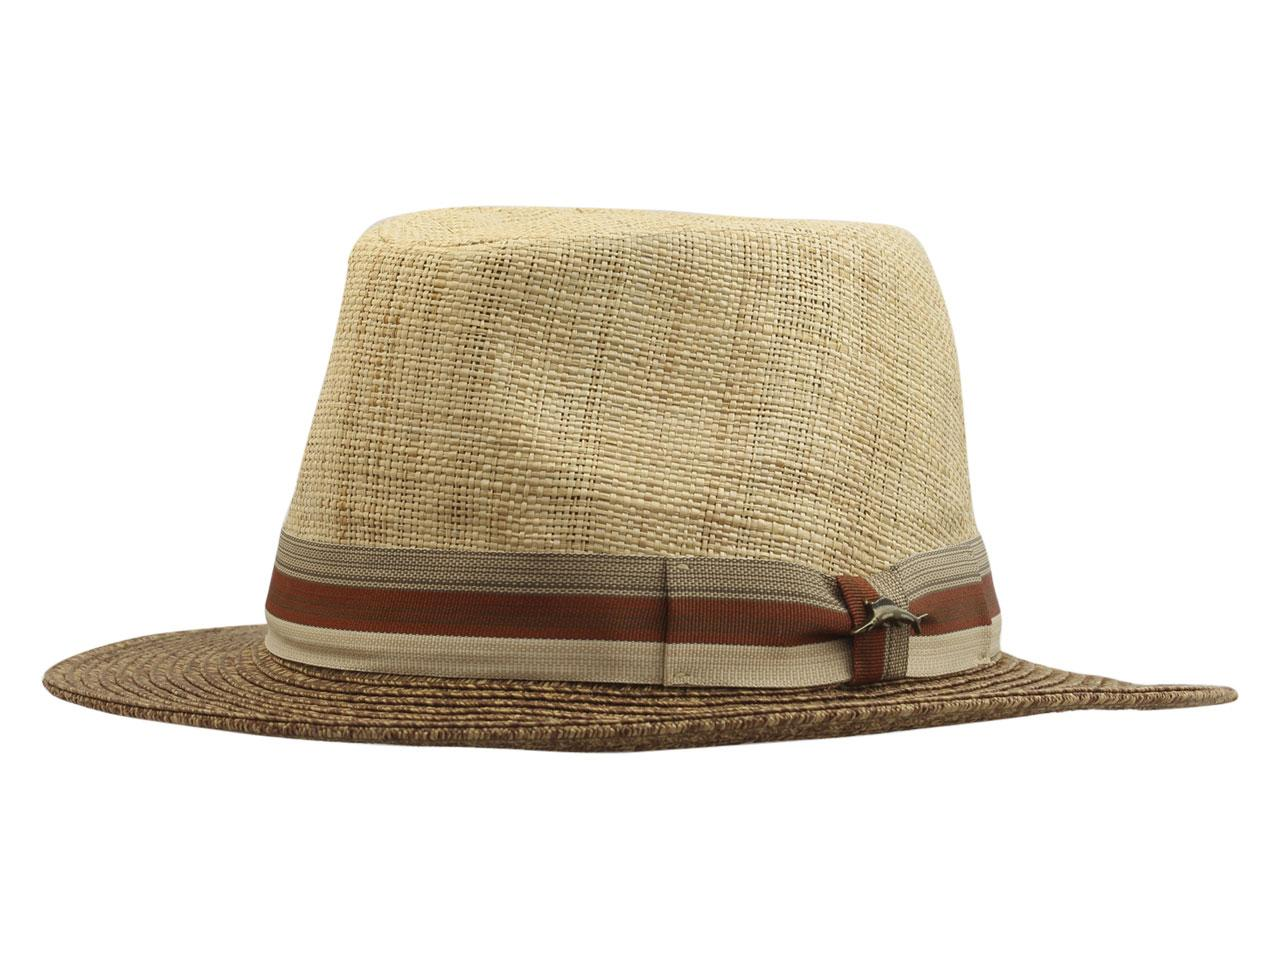 680c7825918c2 Tommy Bahama Men s Matte Raffia Safari Hat